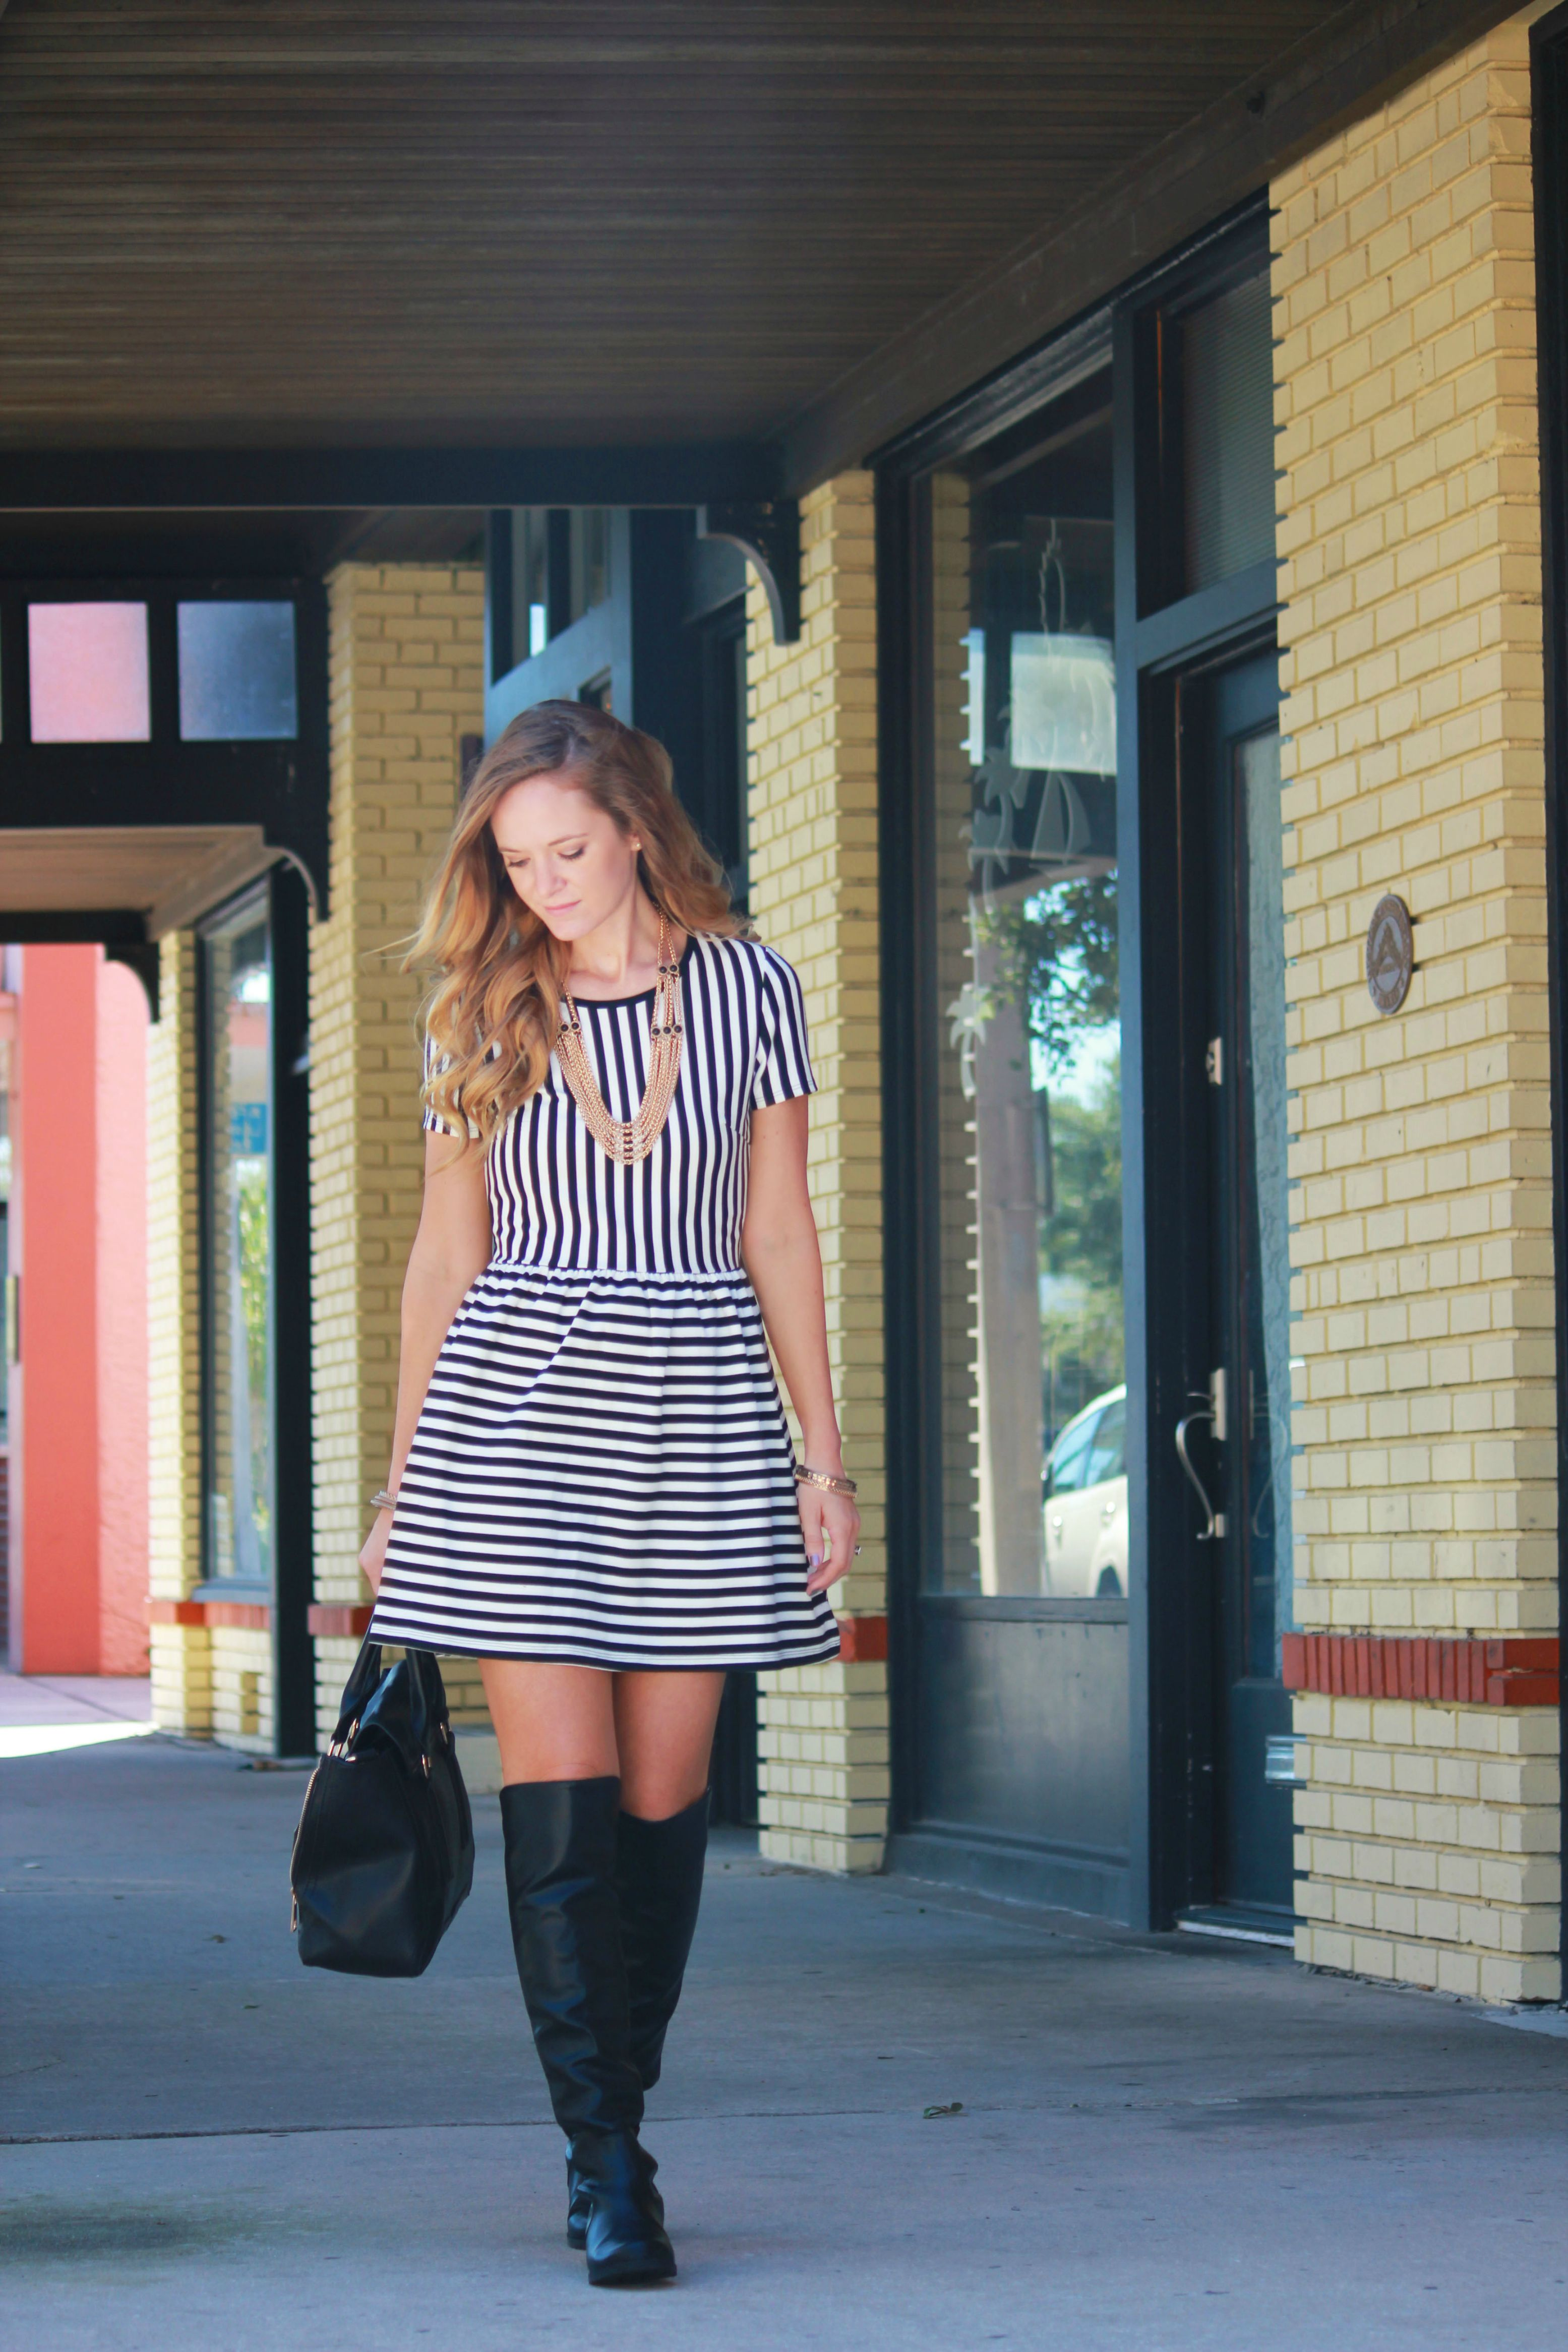 orlando/ florida fashion blogger styling forever 21 striped dress, dsw over the knee boots, and forever 21 black and gold necklace for a casual fall outfit